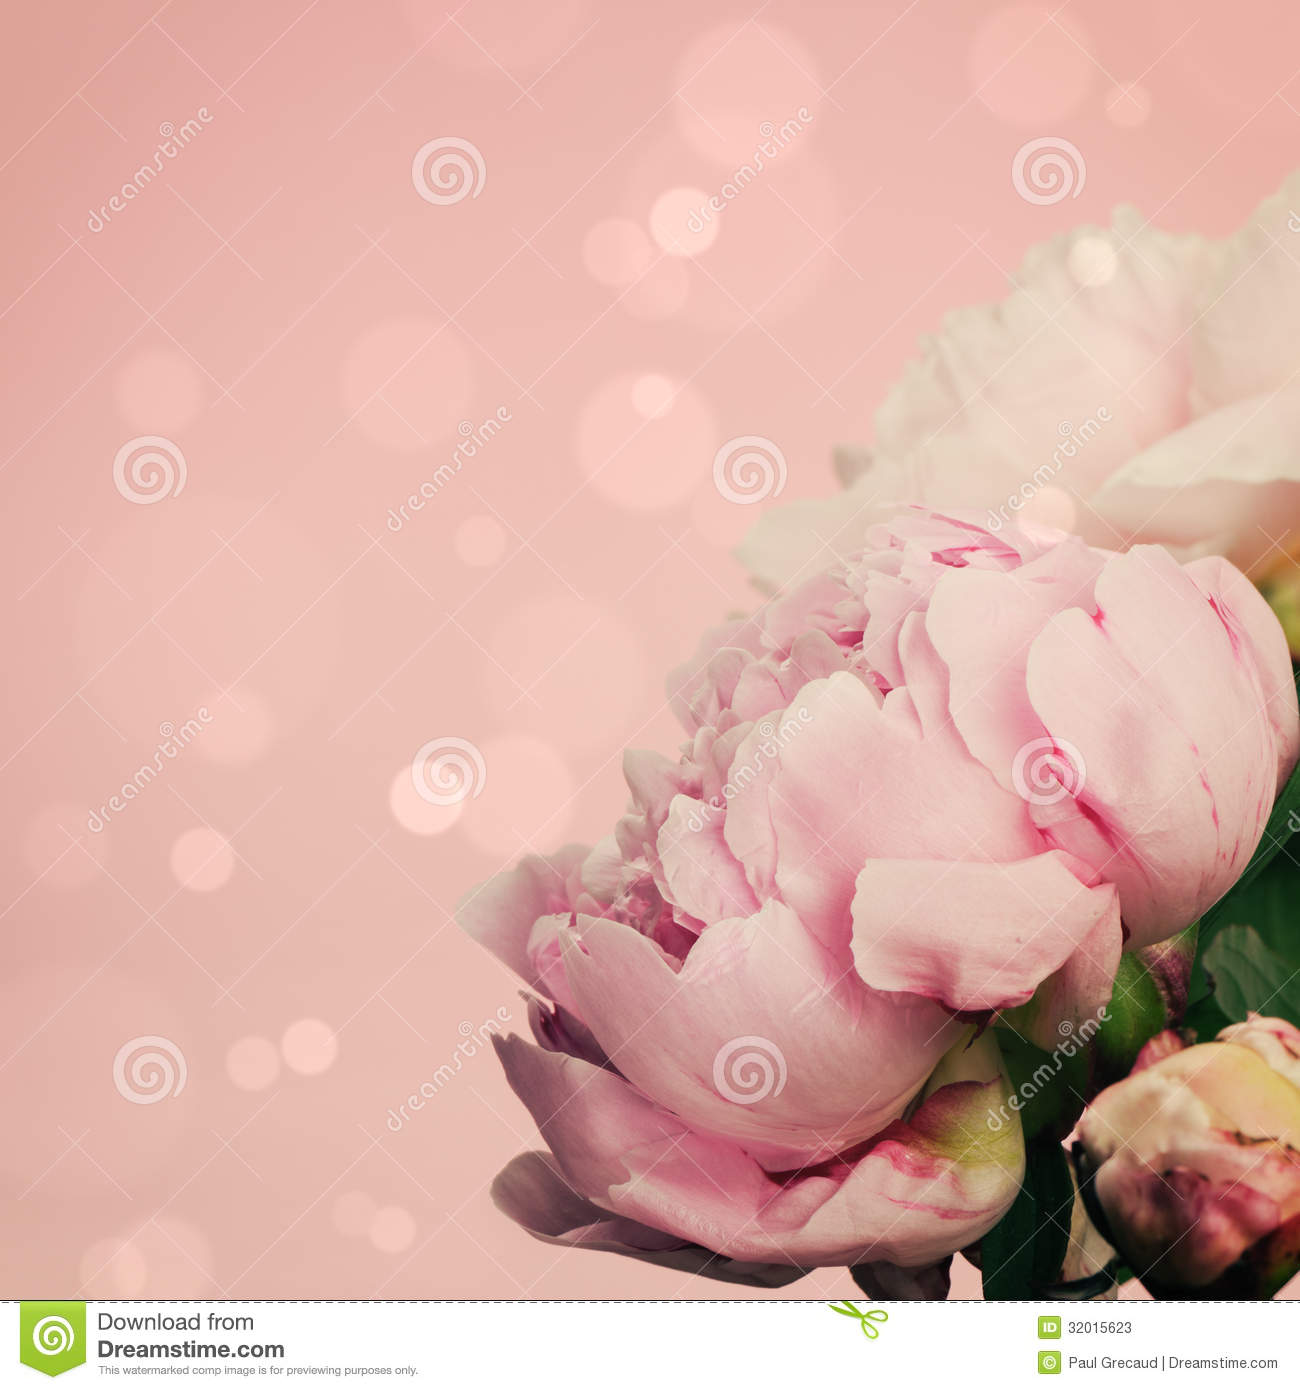 The Pink Peonies Pink Peonies Border Stock Photos Images & Pictures  431 Images